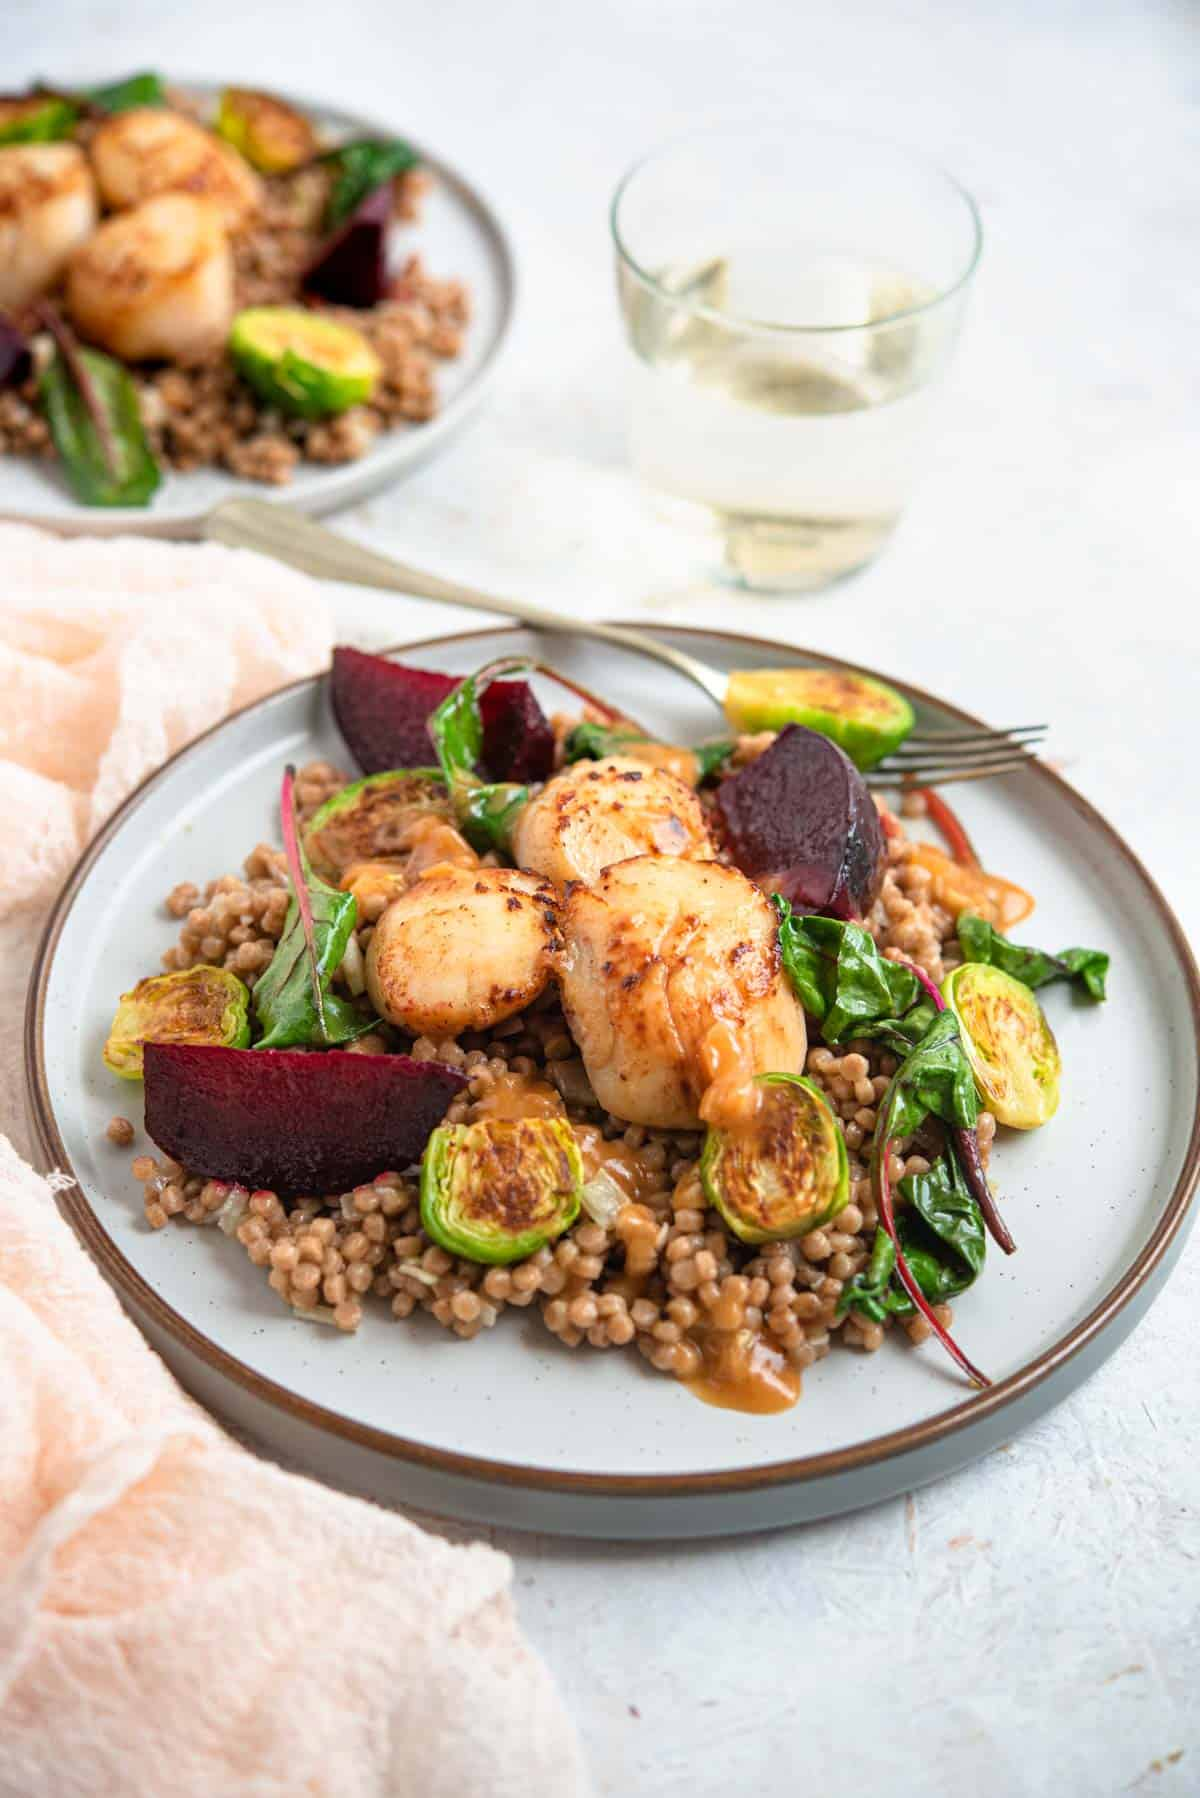 A side shot of sauteed scallops on a plate with cous cous and veggies